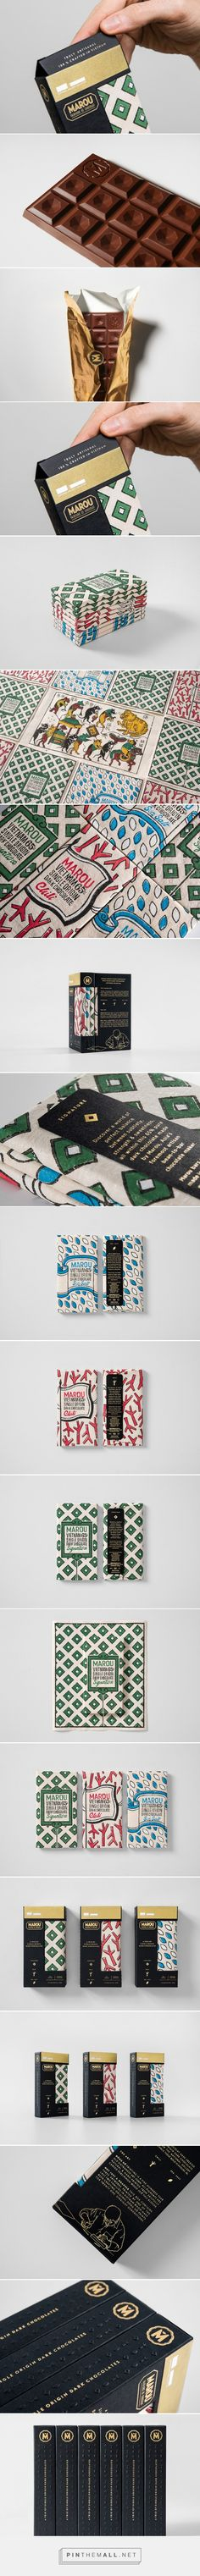 Marou Chocolate packaging design for National Gallery Singapore by Rice Creative - http://www.packagingoftheworld.com/2016/06/marou-chocolate-for-national-gallery.html